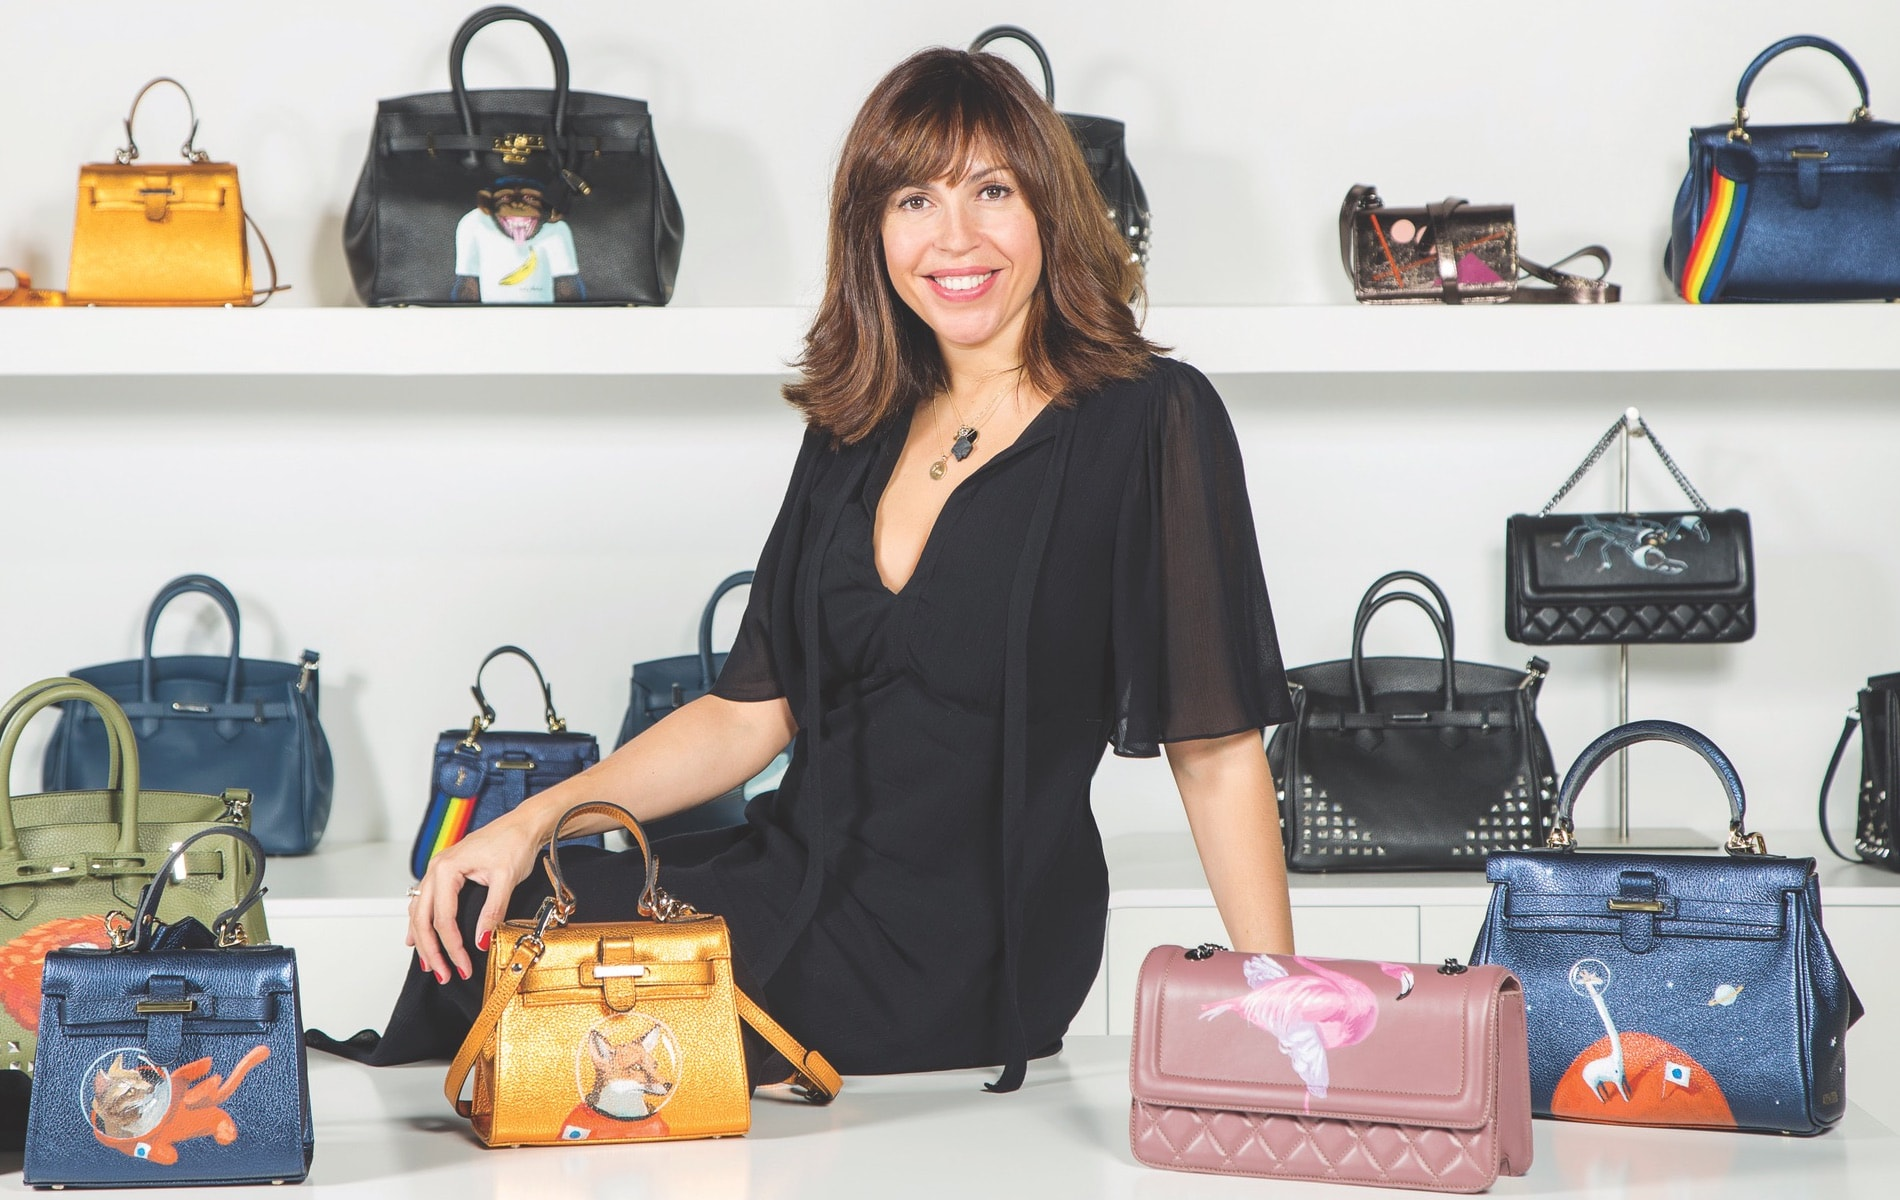 Designer Anna Cortina's eponymous brand partners with world-renowned artists to create fun handbags and other accessories that celebrate the joy of life.